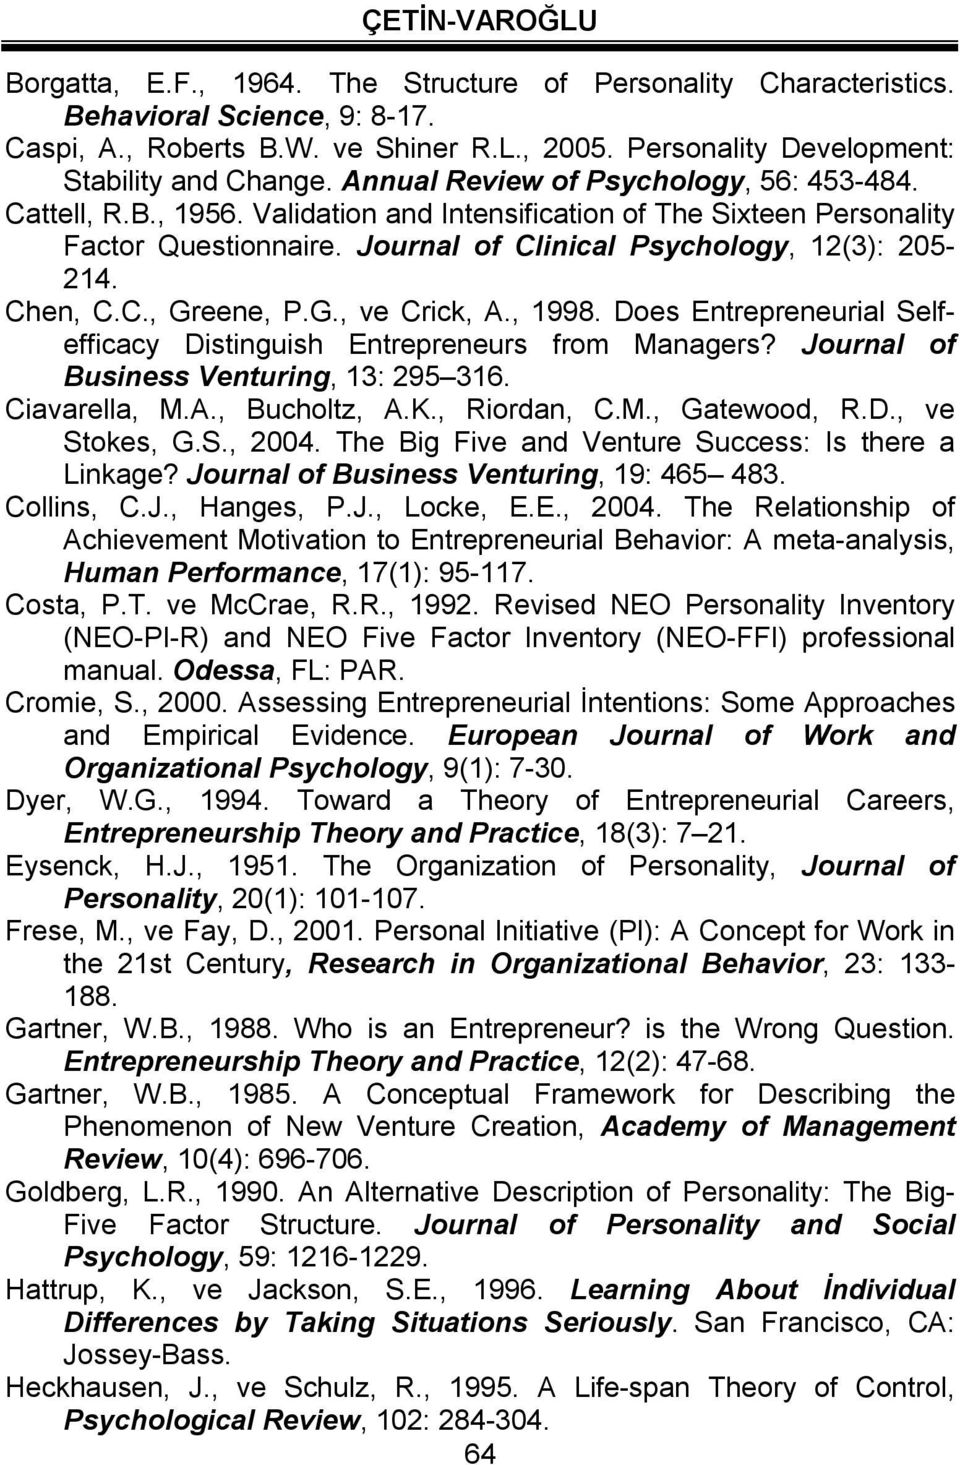 C., Greene, P.G., ve Crick, A., 1998. Does Entrepreneurial Selfefficacy Distinguish Entrepreneurs from Managers? Journal of Business Venturing, 13: 295 316. Ciavarella, M.A., Bucholtz, A.K.